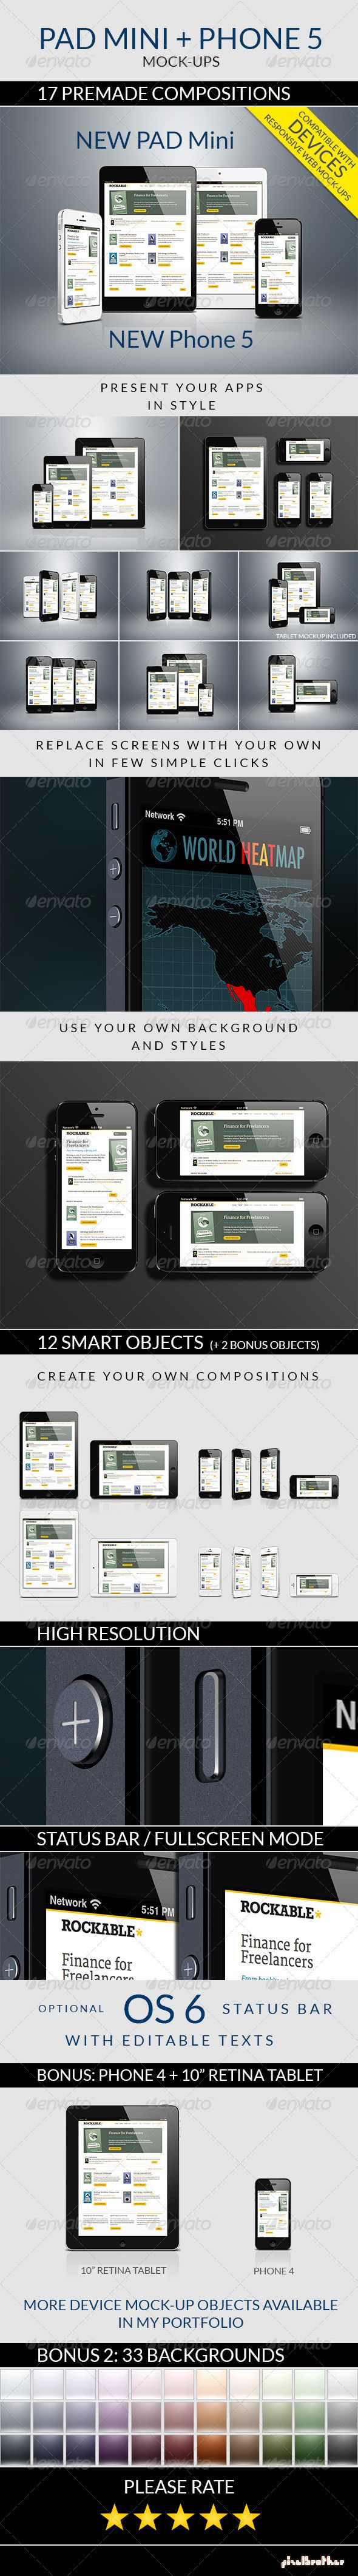 Pad Mini and Phone 5 Mockups — Photoshop PSD #hi-res #retina • Available here → https://graphicriver.net/item/pad-mini-and-phone-5-mockups/3249008?ref=pxcr